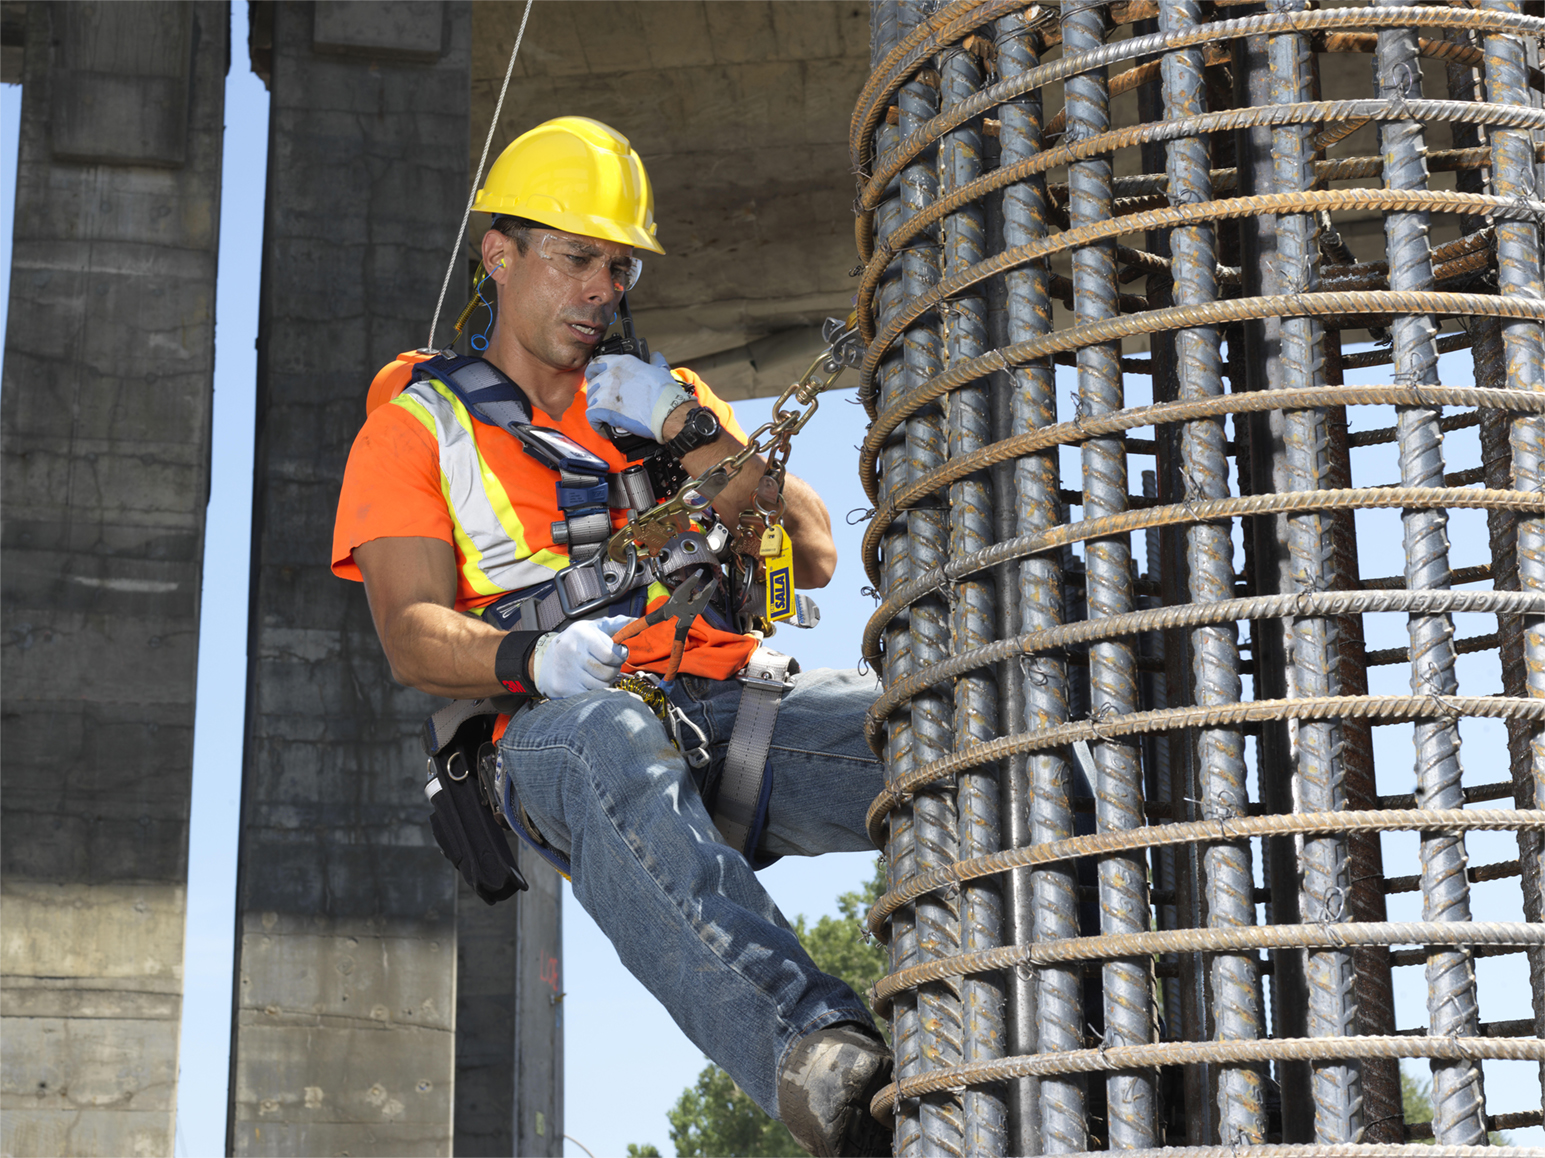 Fall protection facts